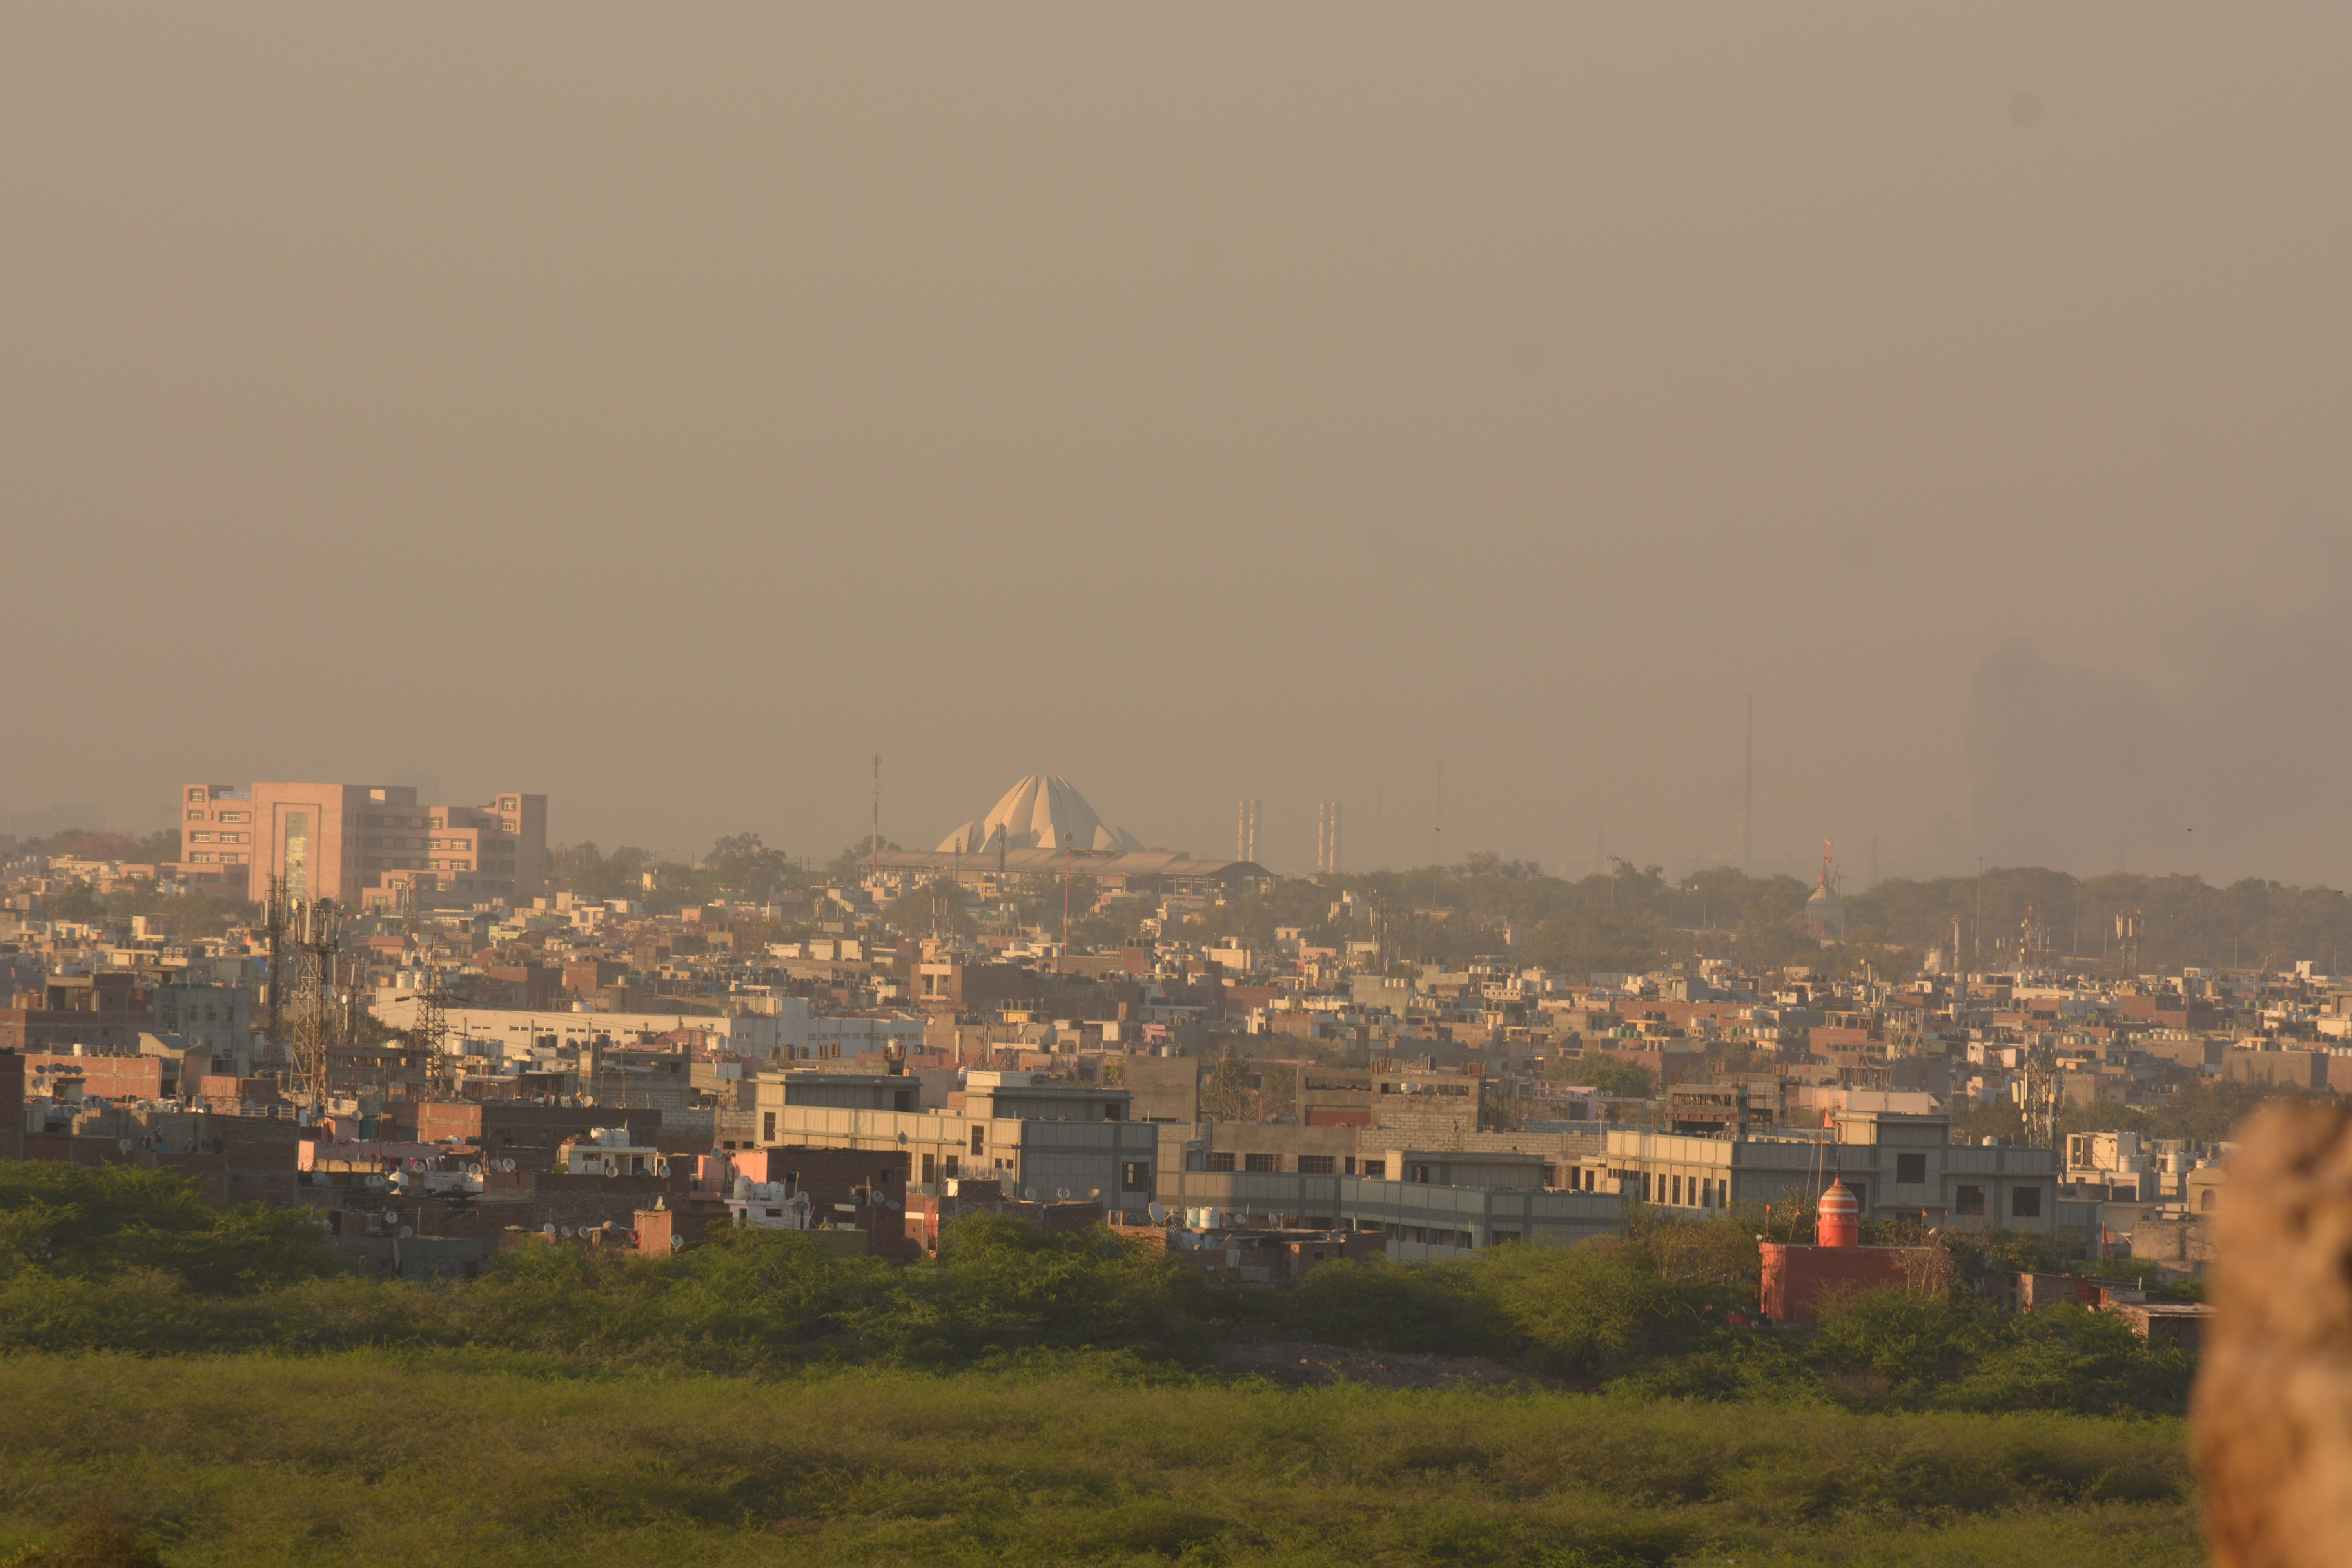 Delhi - Places and Things You Should Never Miss! 1